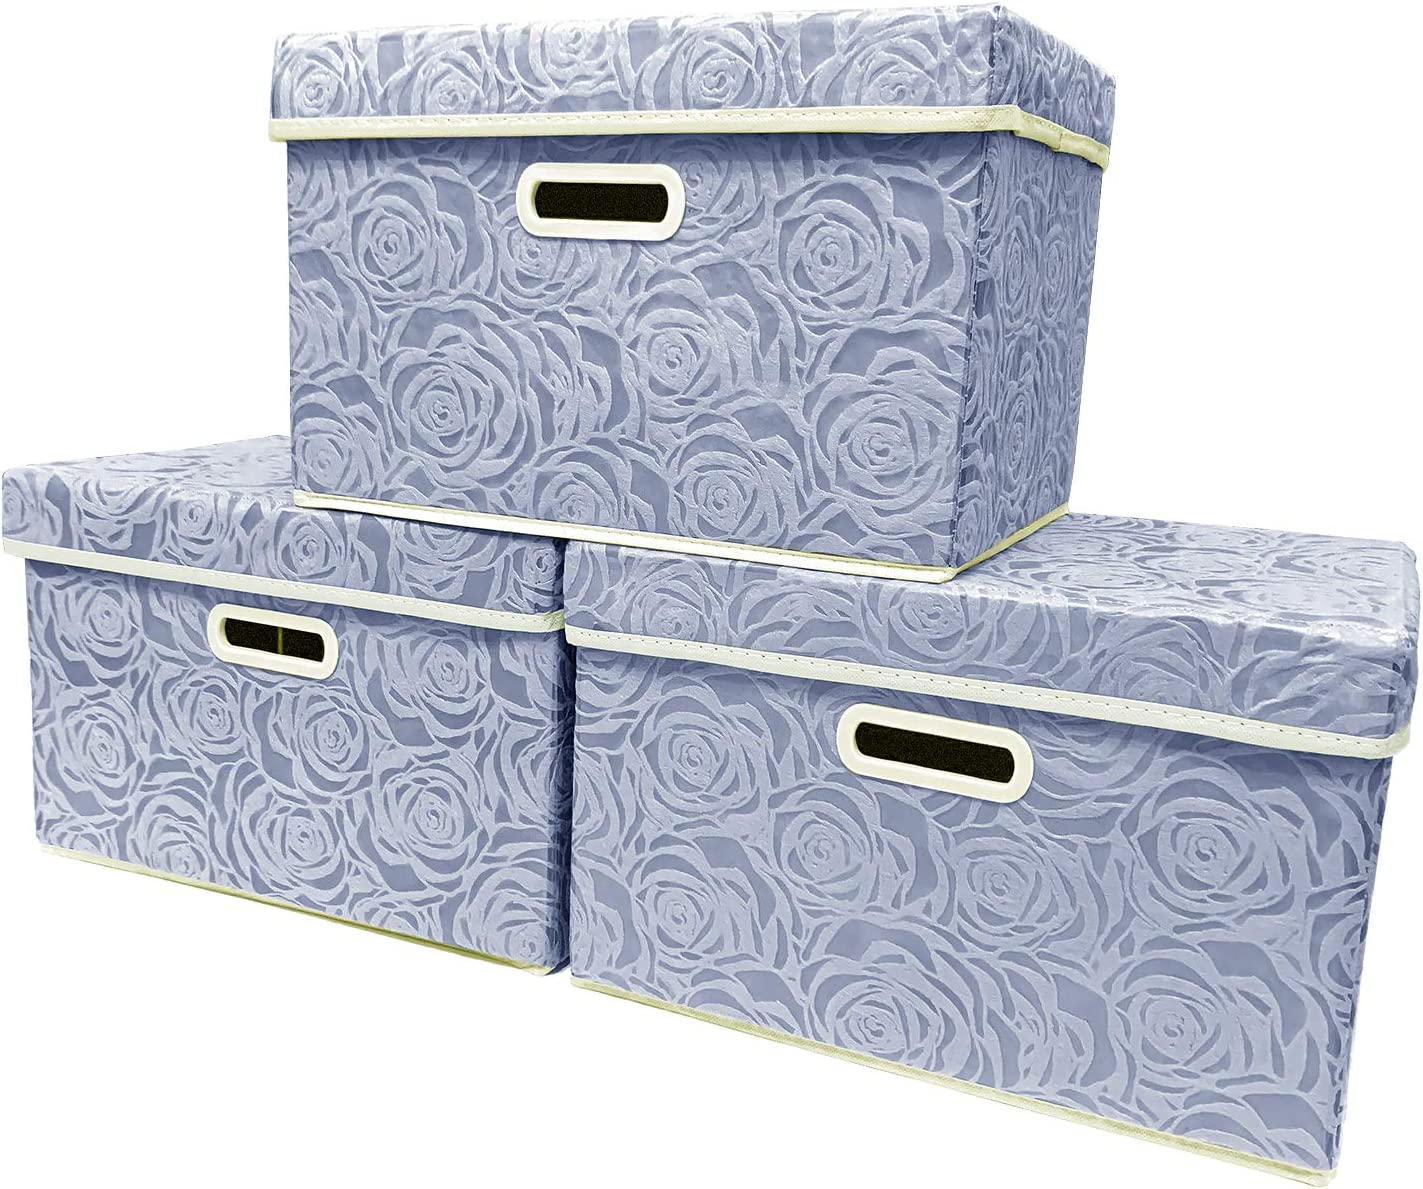 Storage Cubes 3 Pack, Foldable Basket Box, Closet Organizer with Lid and Handles for Home, Office, Nursery, Closet, Bedroom, Living Room